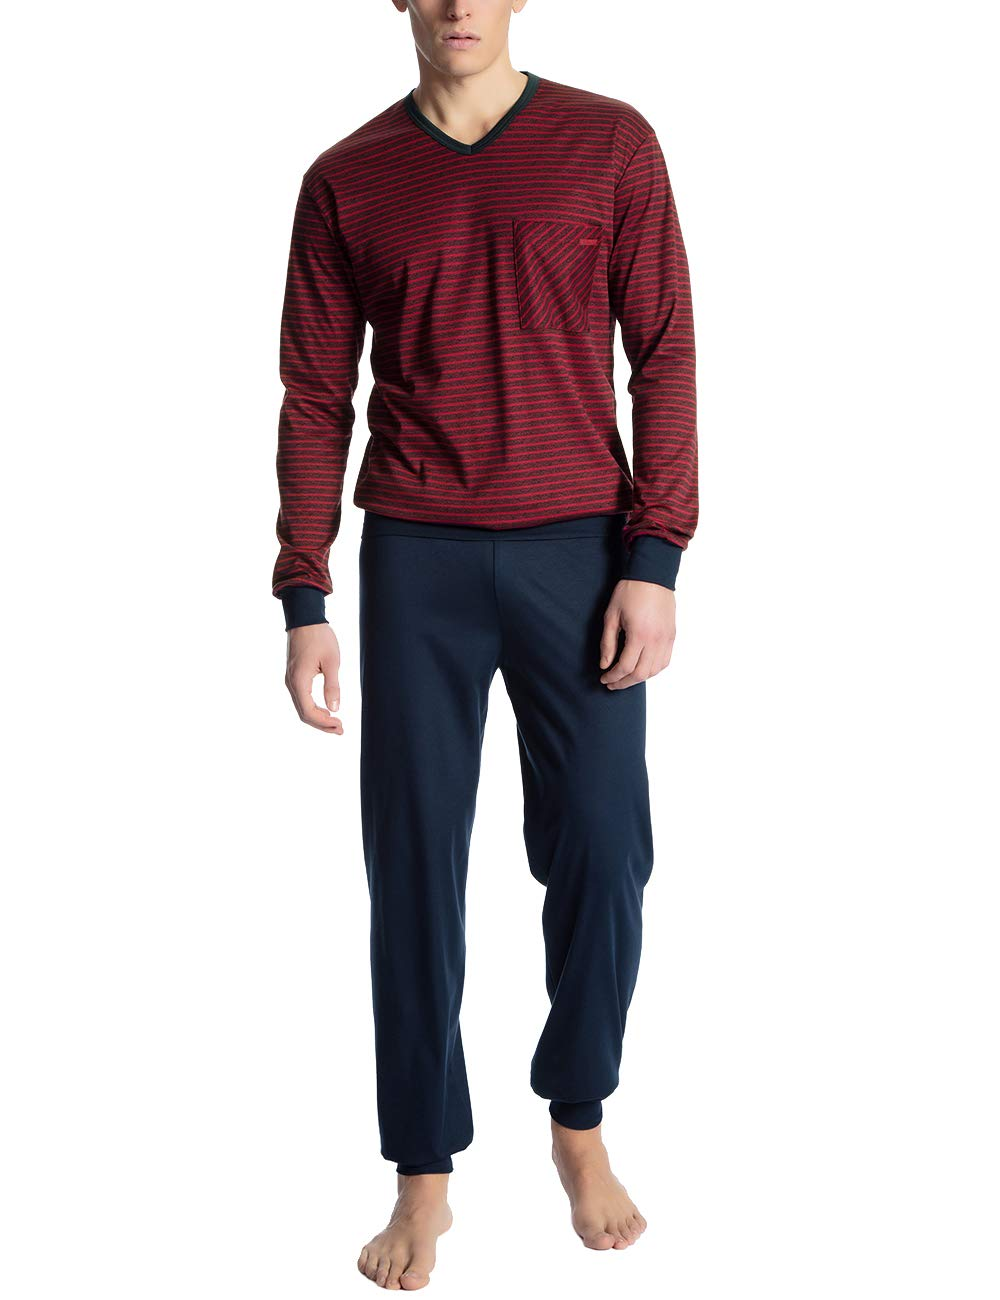 1 Ensemble 159X Calida Homme PyjamaRougerumba Red Relax Streamline De large eED9IWH2Y